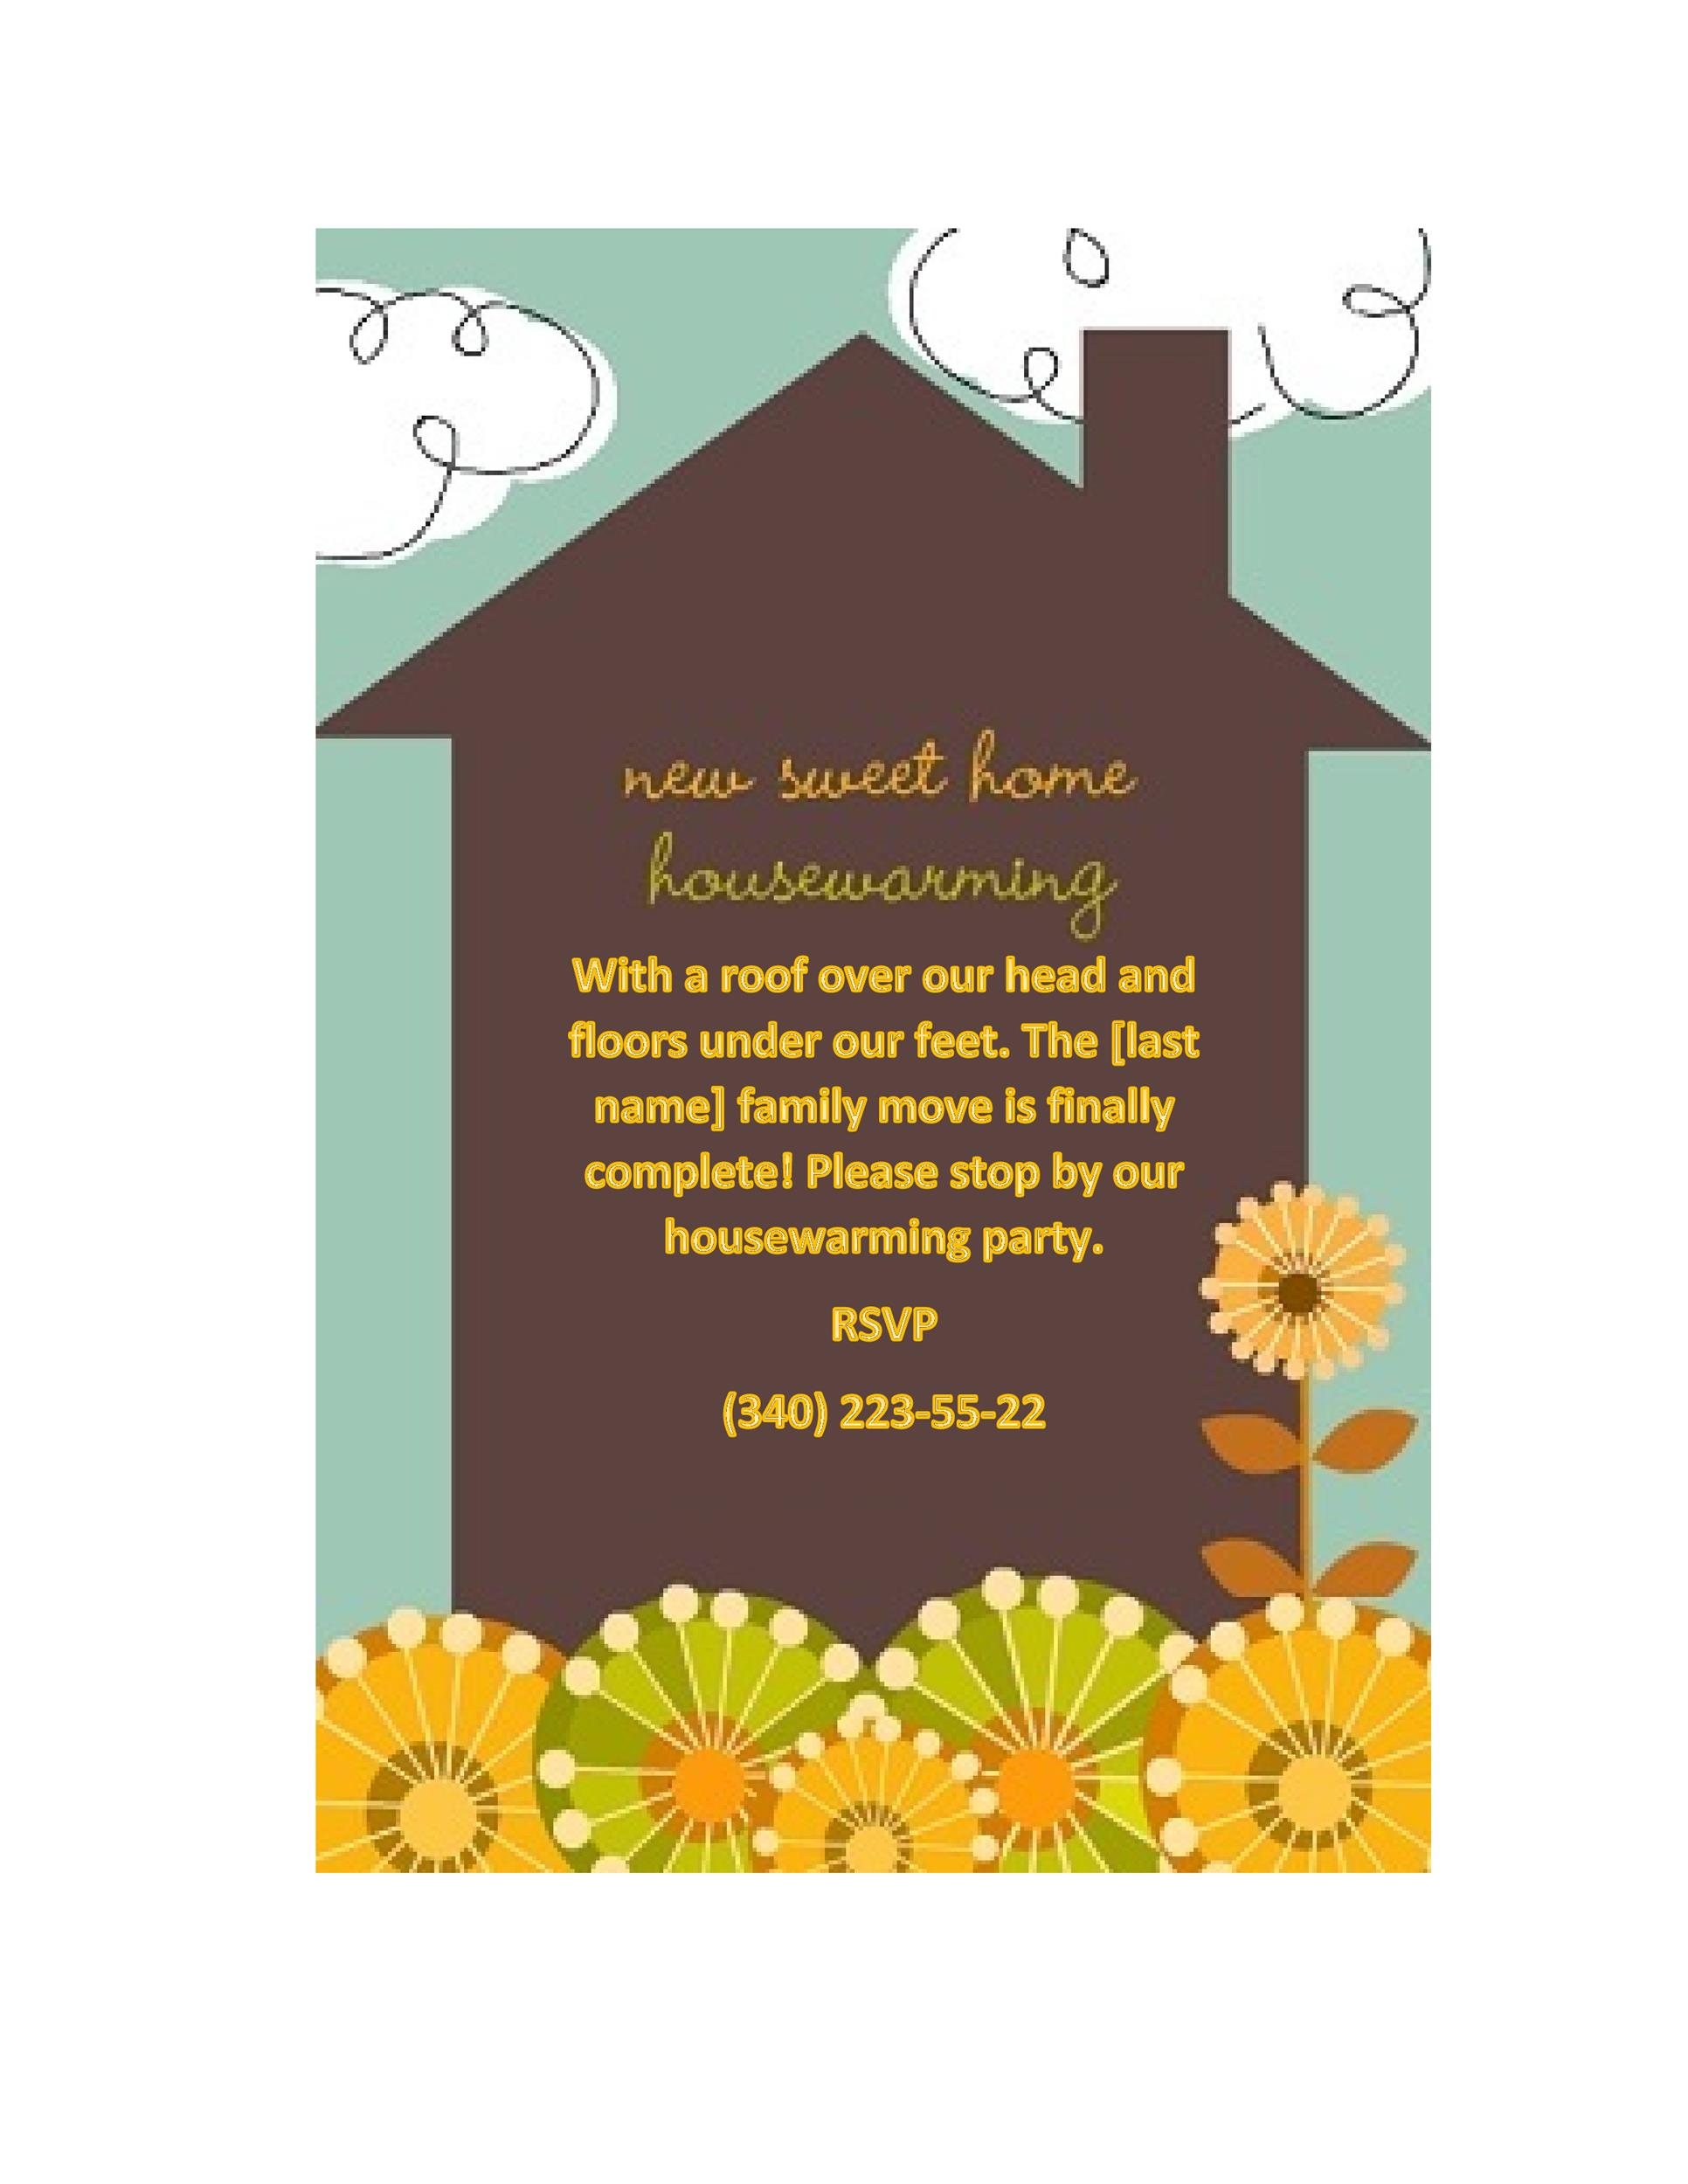 picture about Free Printable Housewarming Invitations called 40+ Free of charge Printable Housewarming Social gathering Invitation Templates